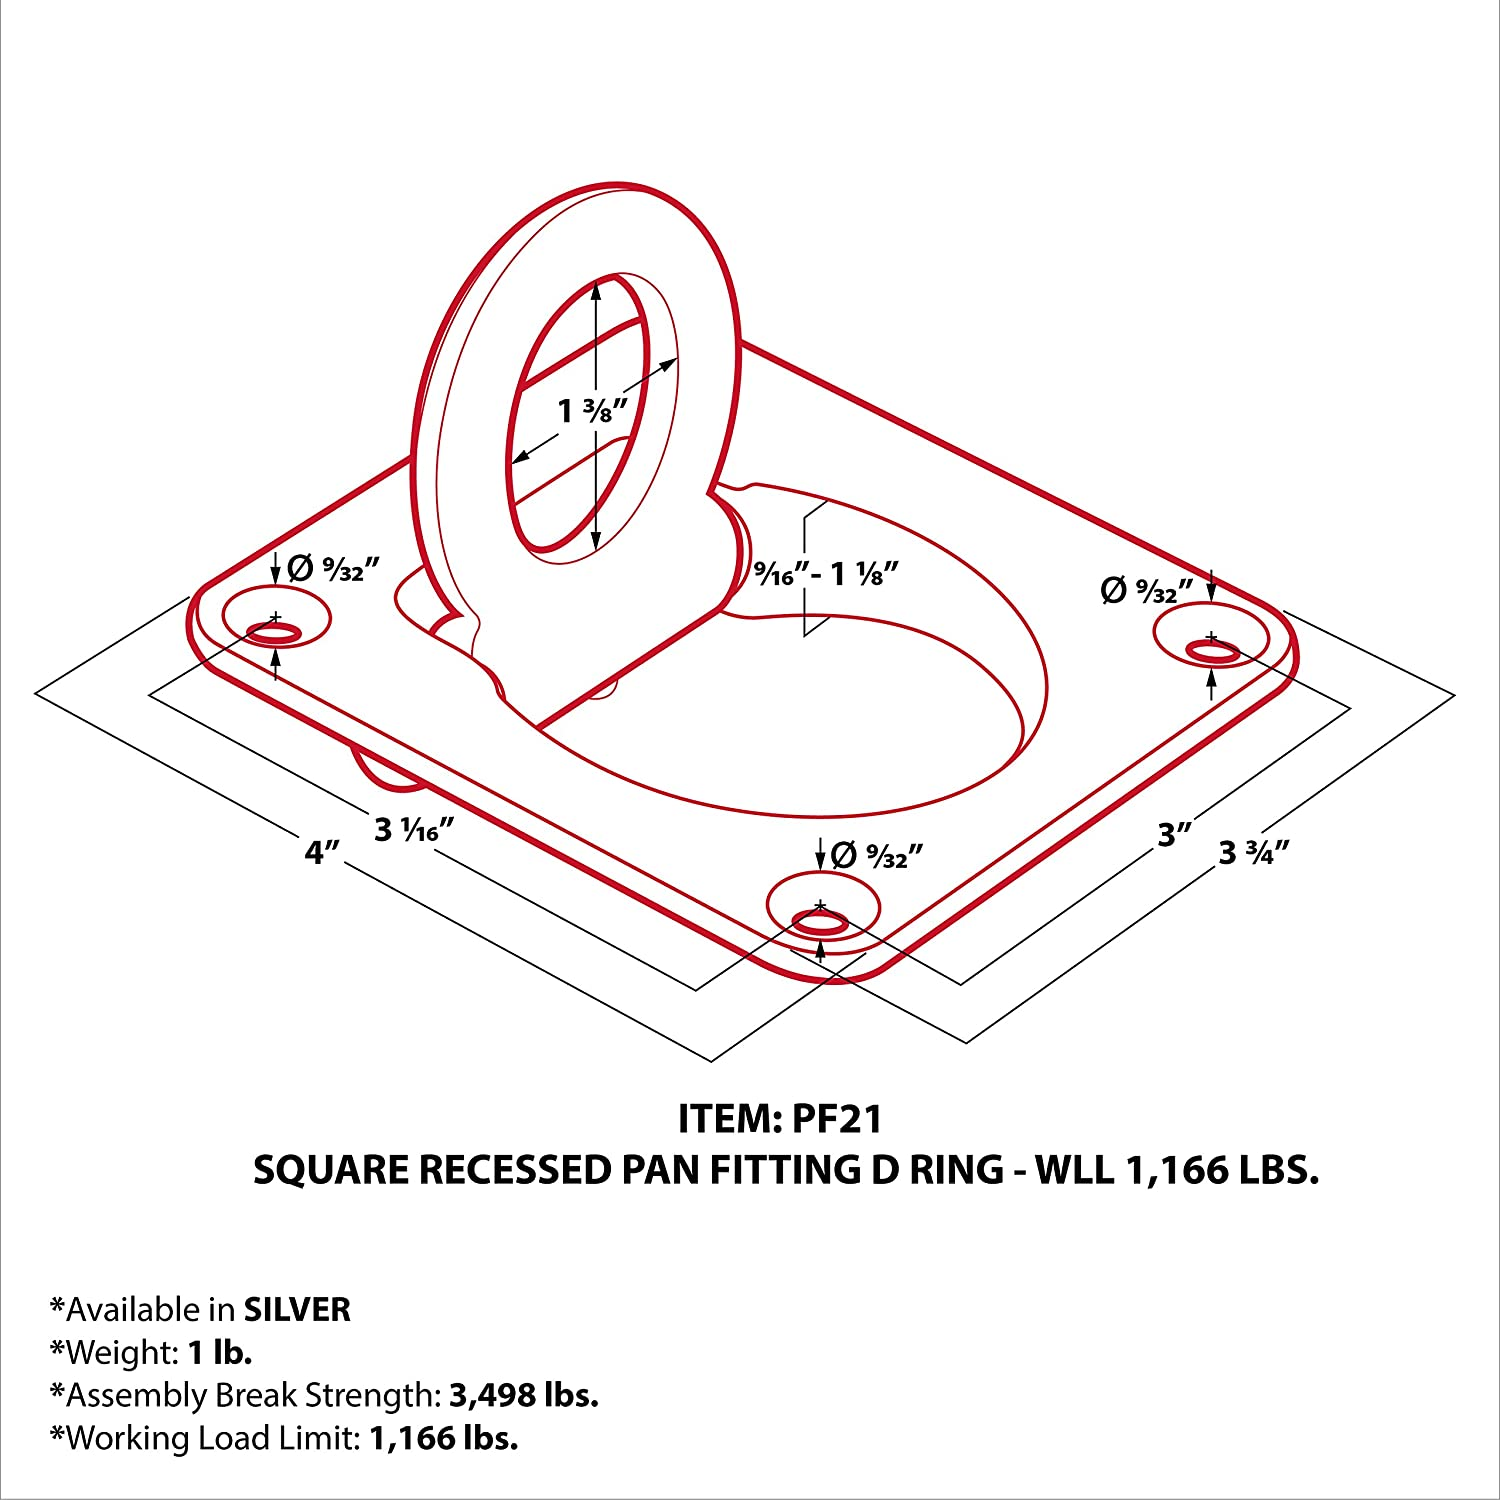 Four Recessed Tie Down D Ring Trailer Cargo Load Tiedown Mate Utility Wiring Diagram Free Picture Anchors Square Floor Pan Fitting Galvanized Steel Countersunk Bolting Holes